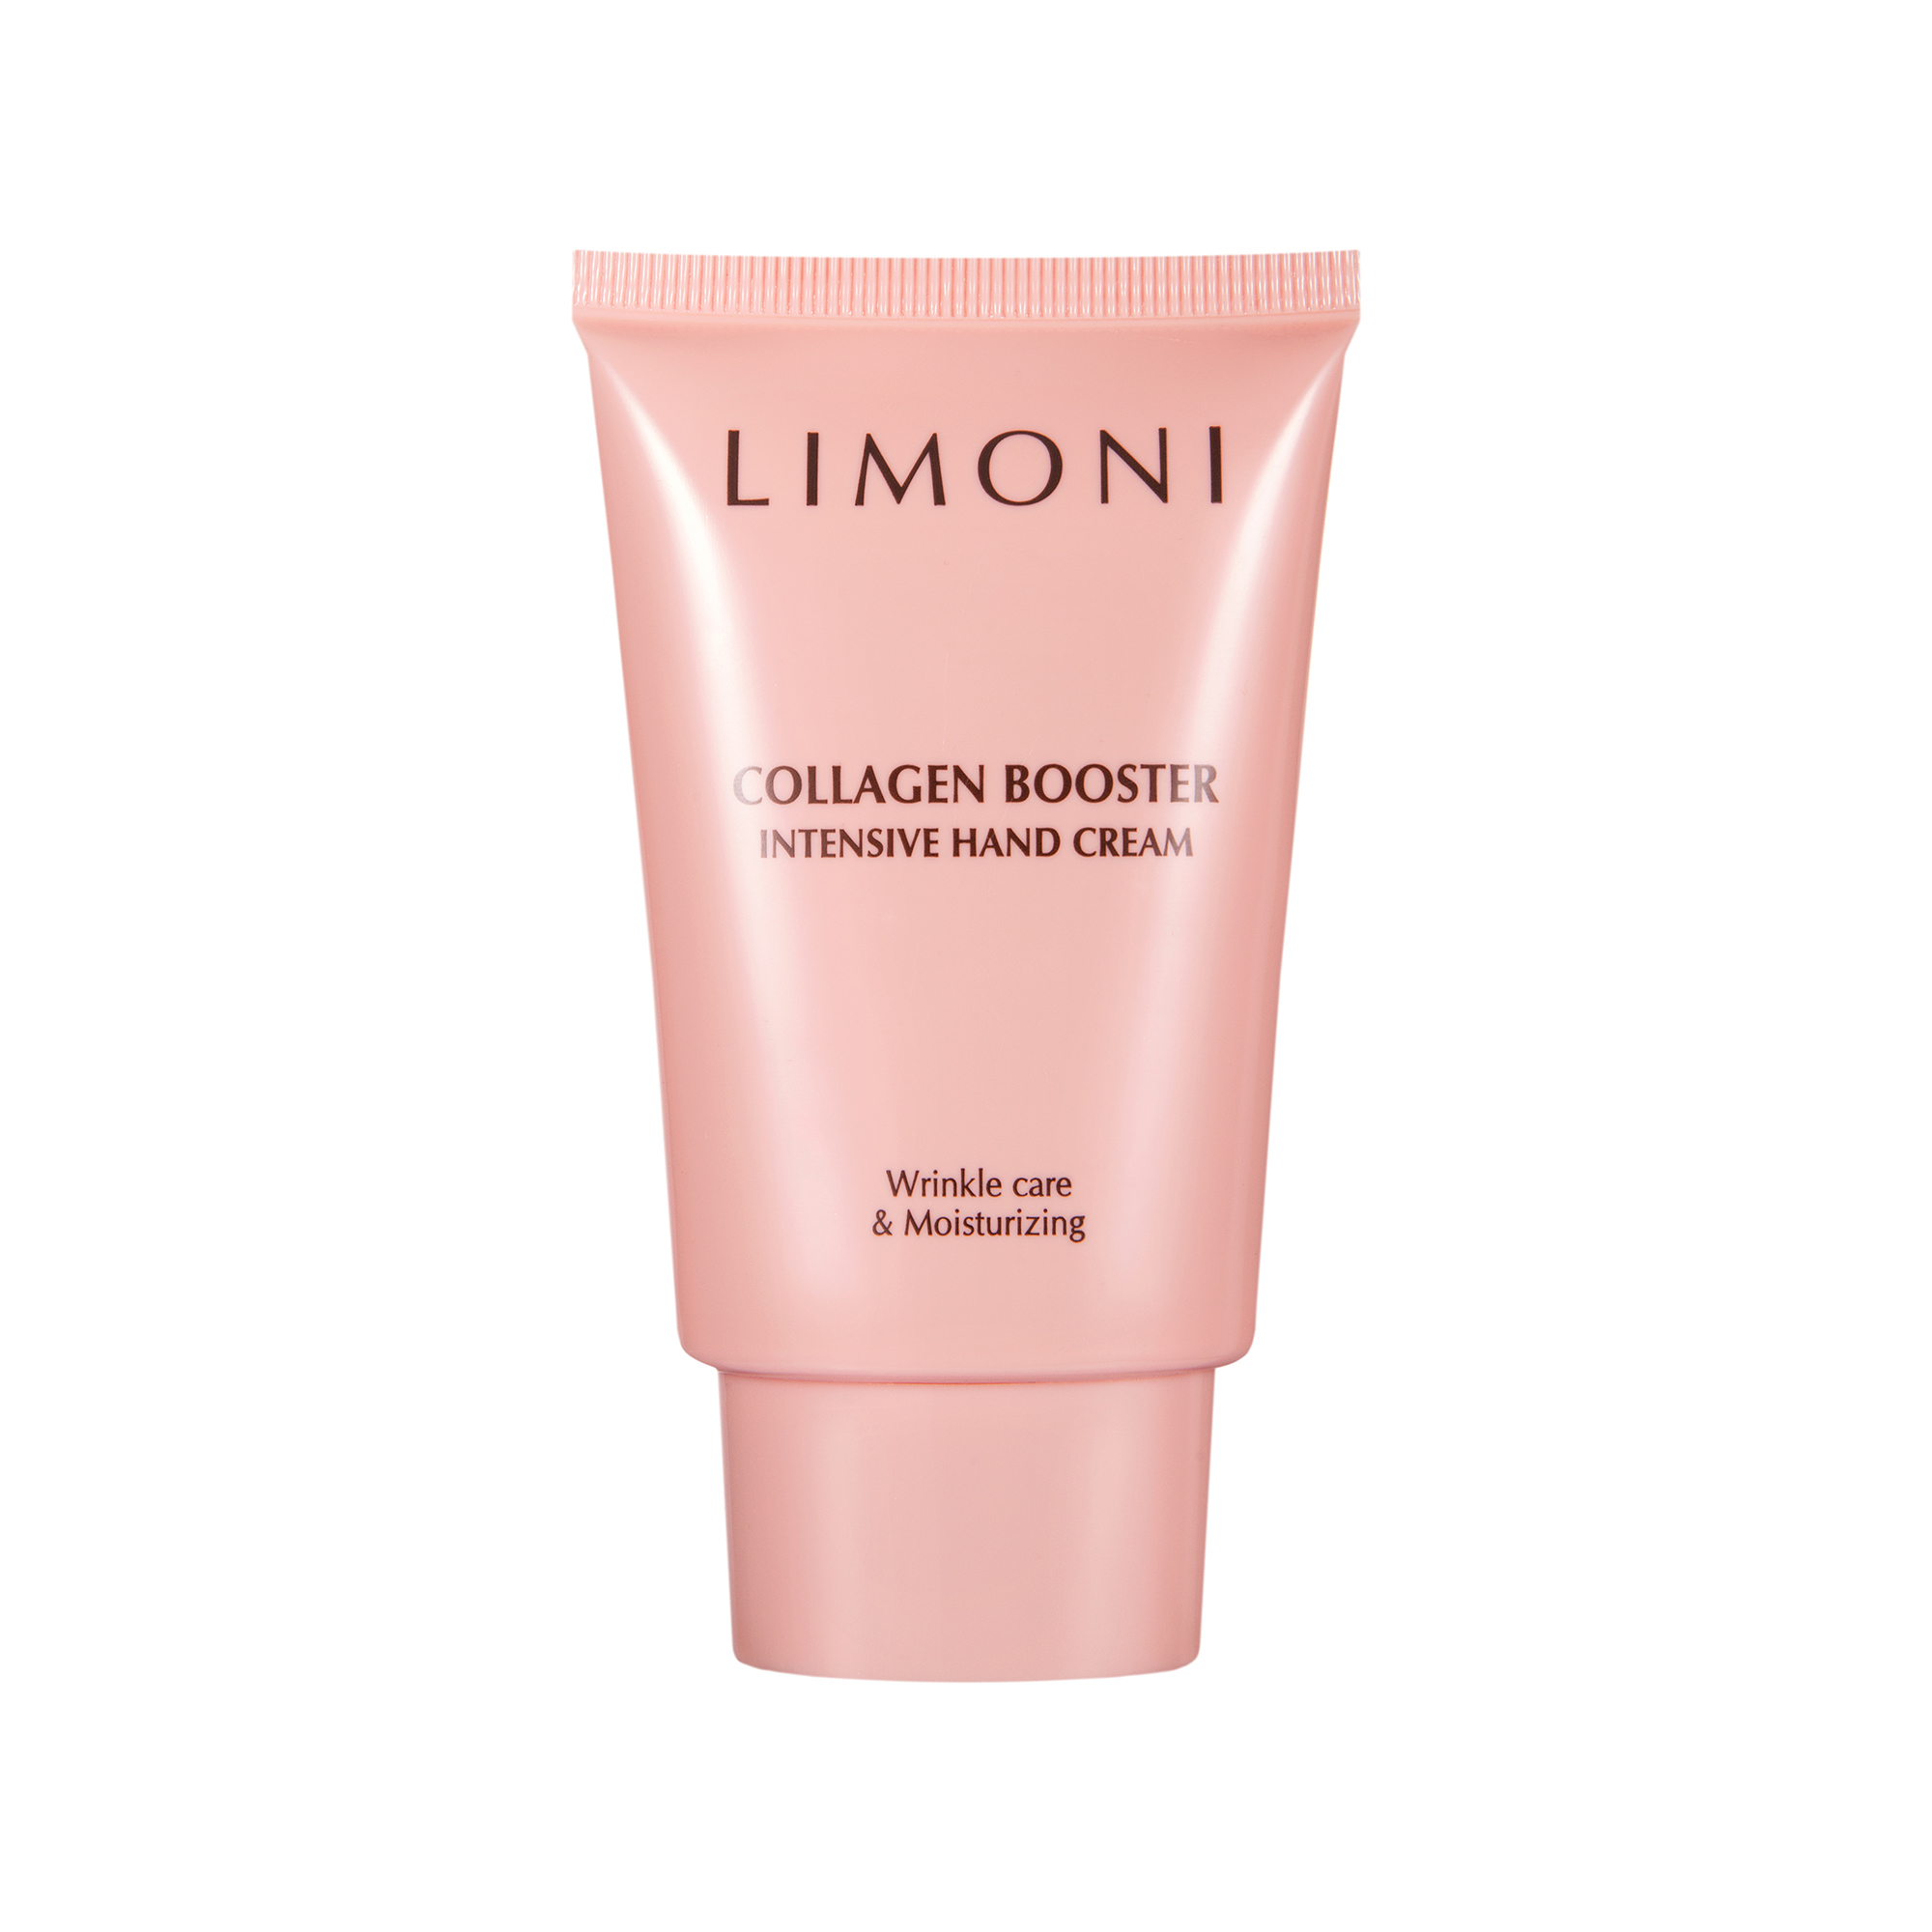 LIMONI Крем для рук с коллагеном LIMONI collagen booster intensive hand cream / HAND CREAM 50 мл